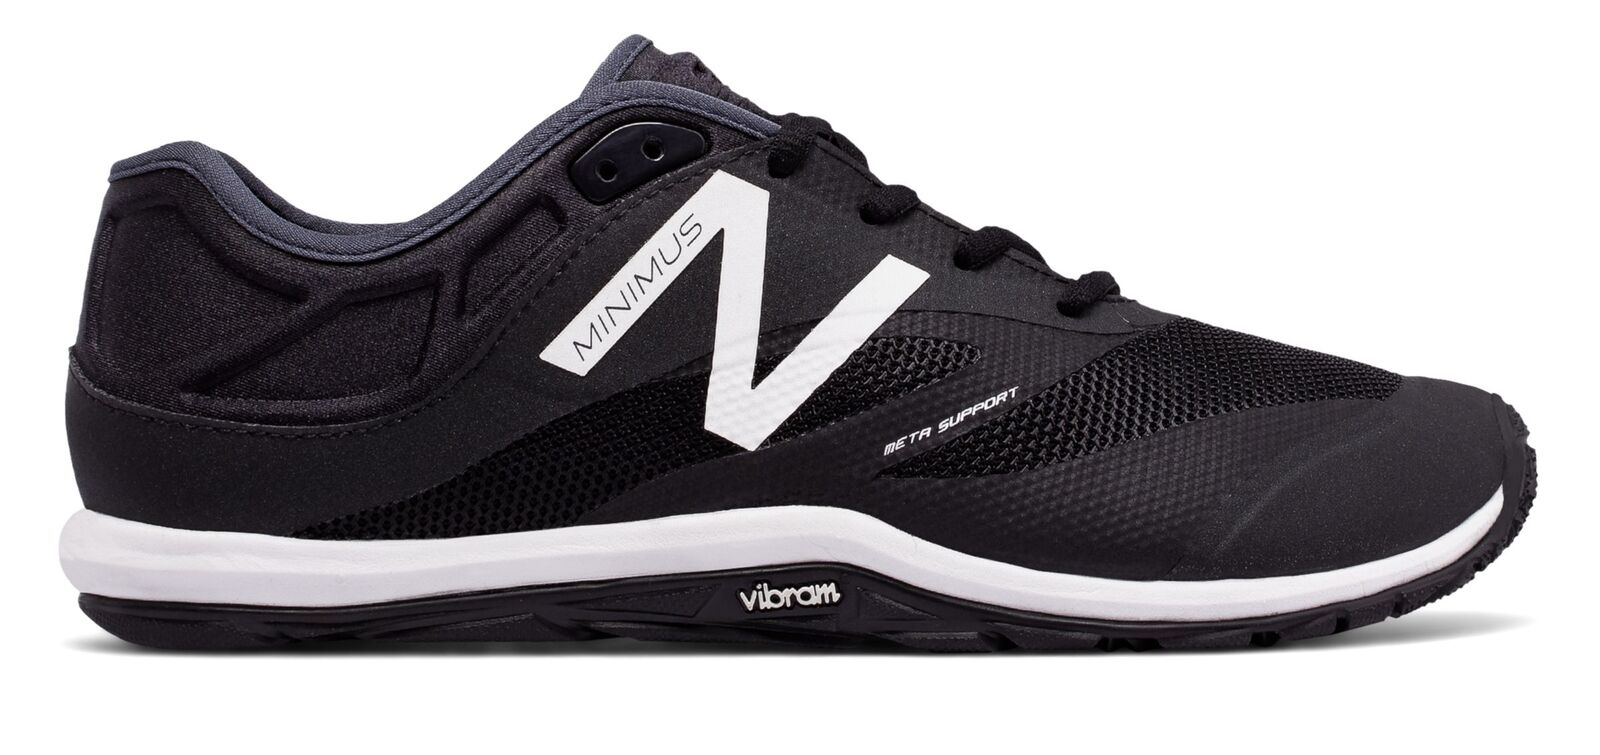 New Balance Male Men's Minimus 20V6 Trainer Adult Black With White & Grey